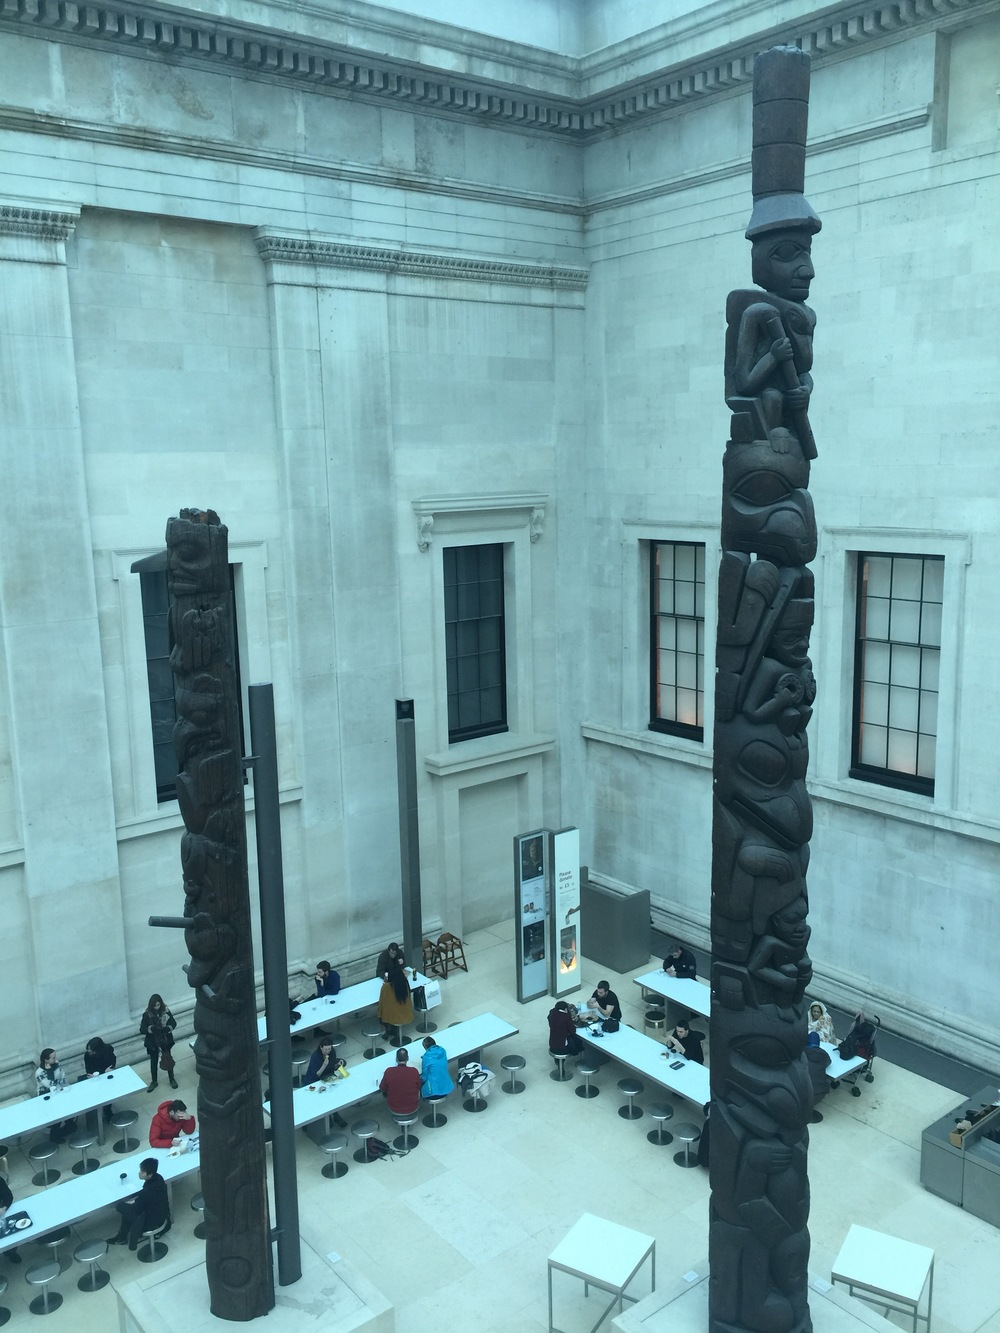 Seeing the Haida poles so dislocated from home brought a profound mix of feelings.